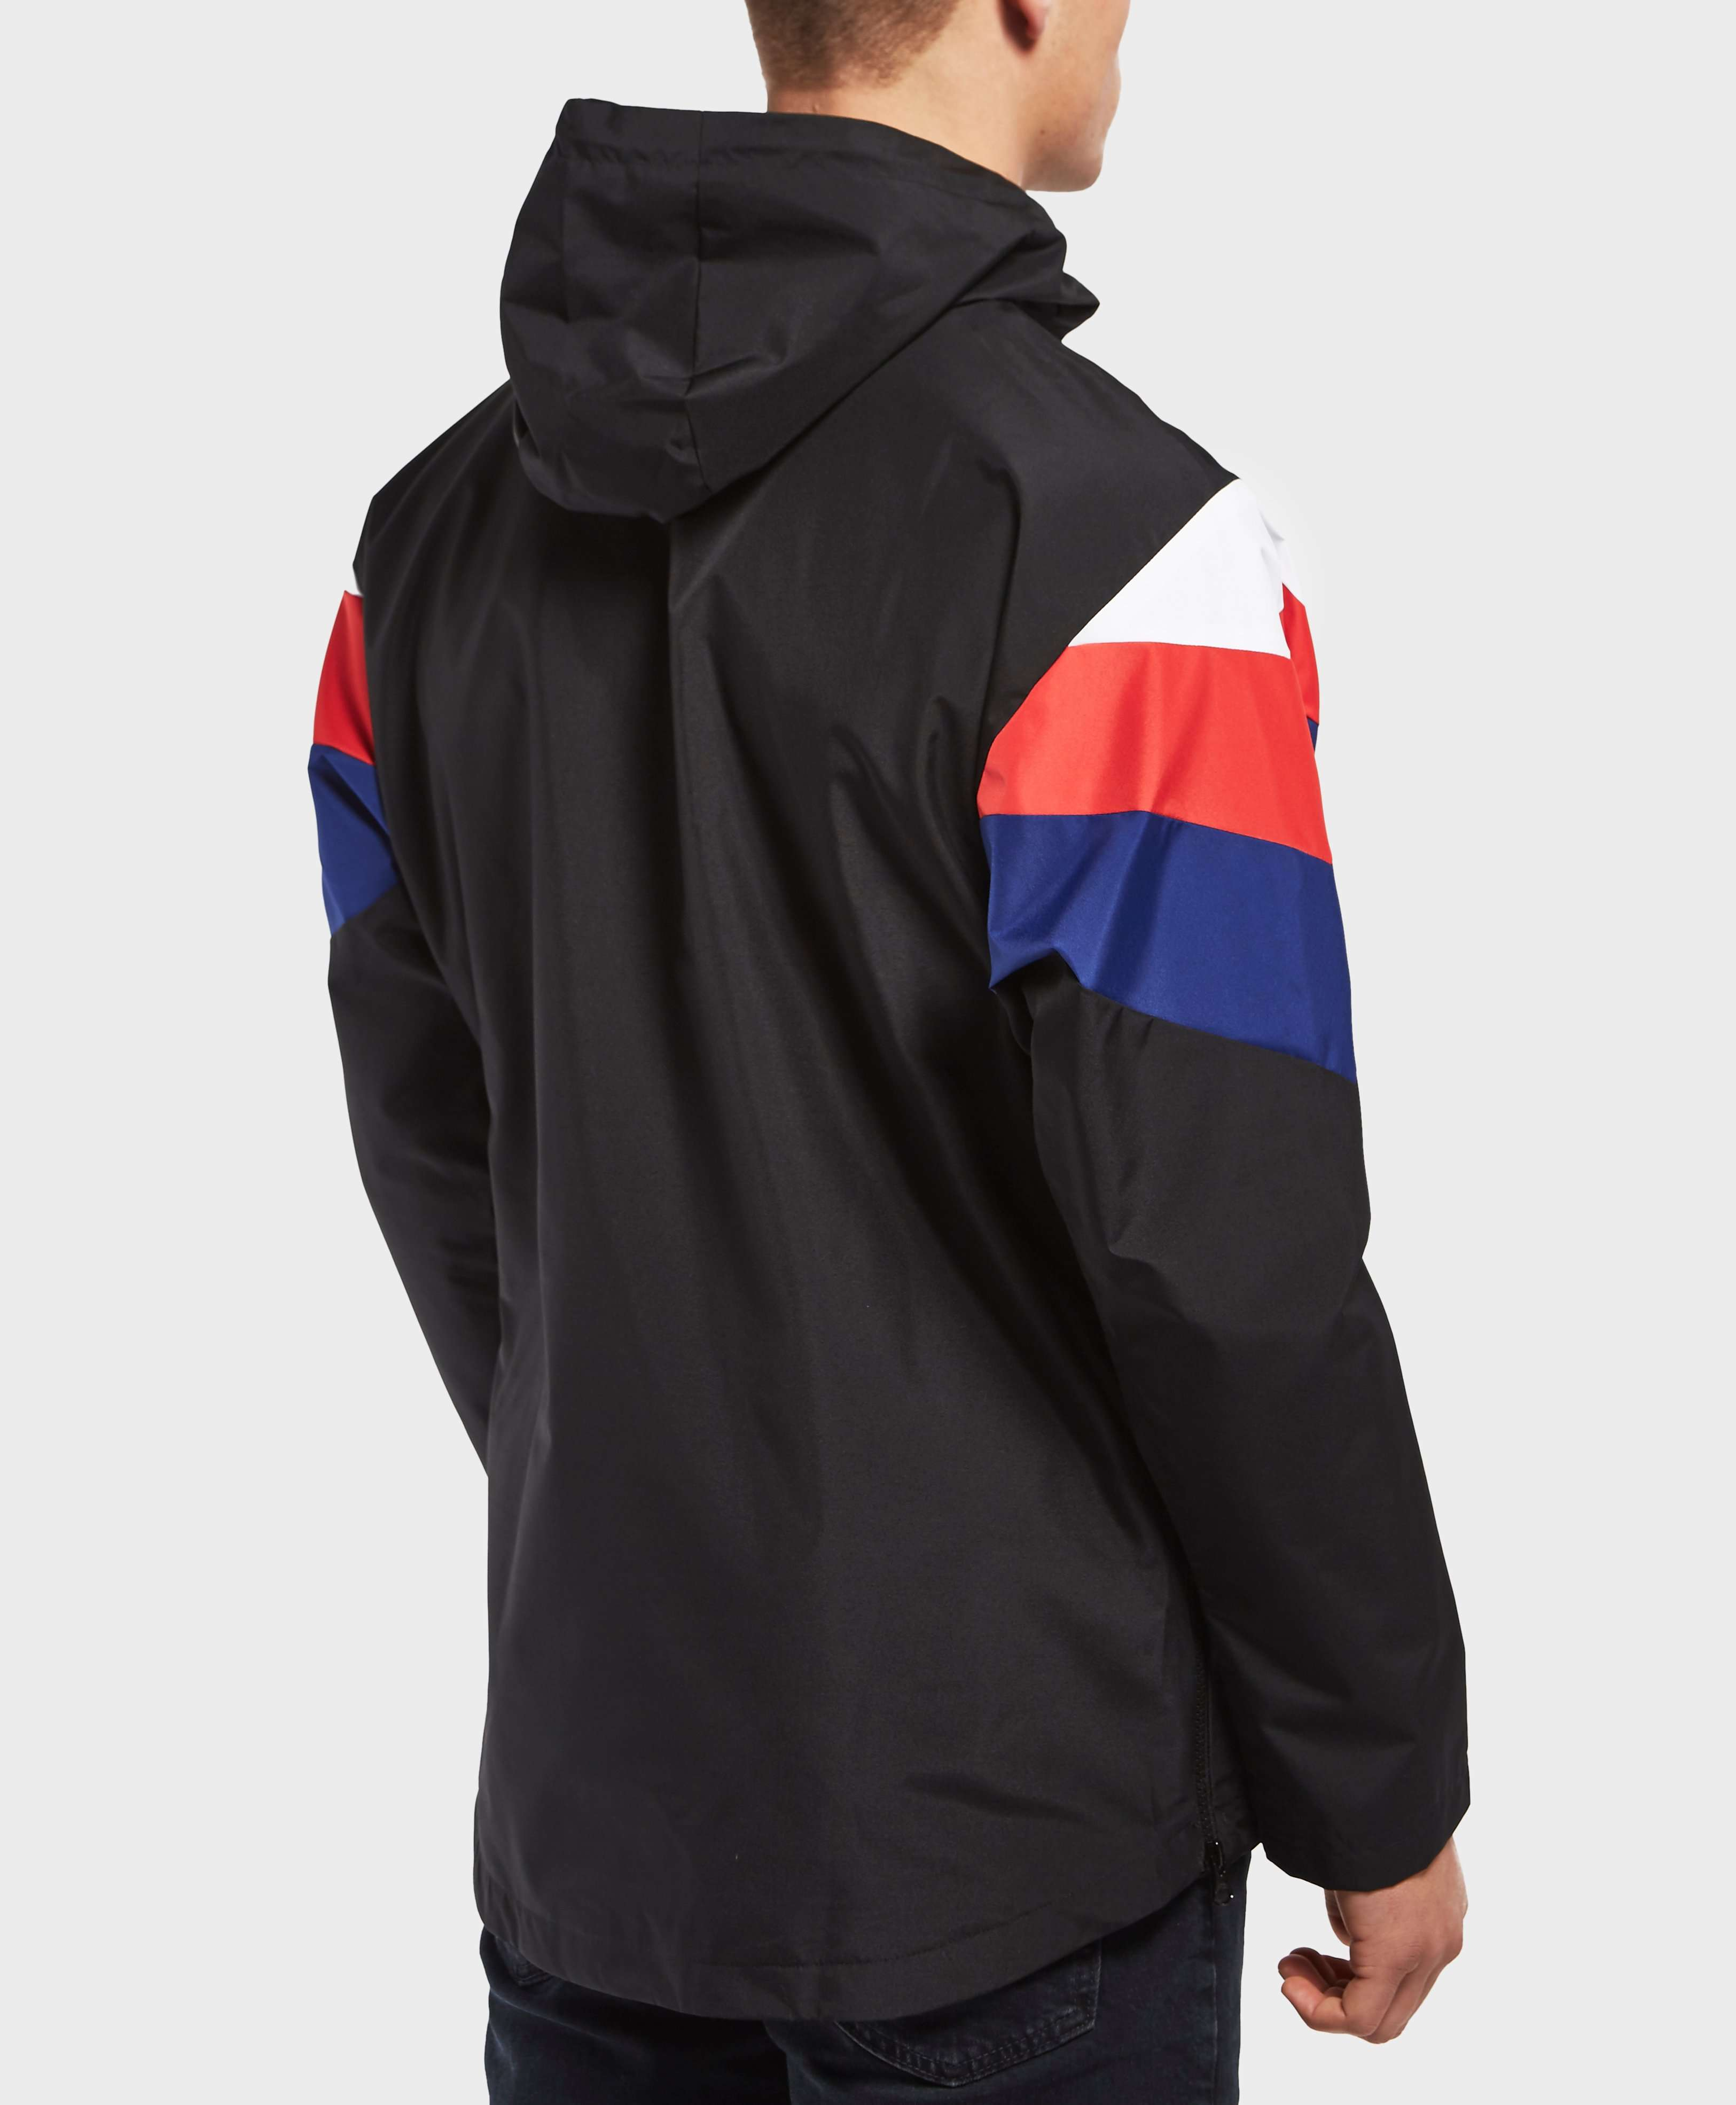 adidas Originals 90's Overhead Lightweight Windbreaker Jacket